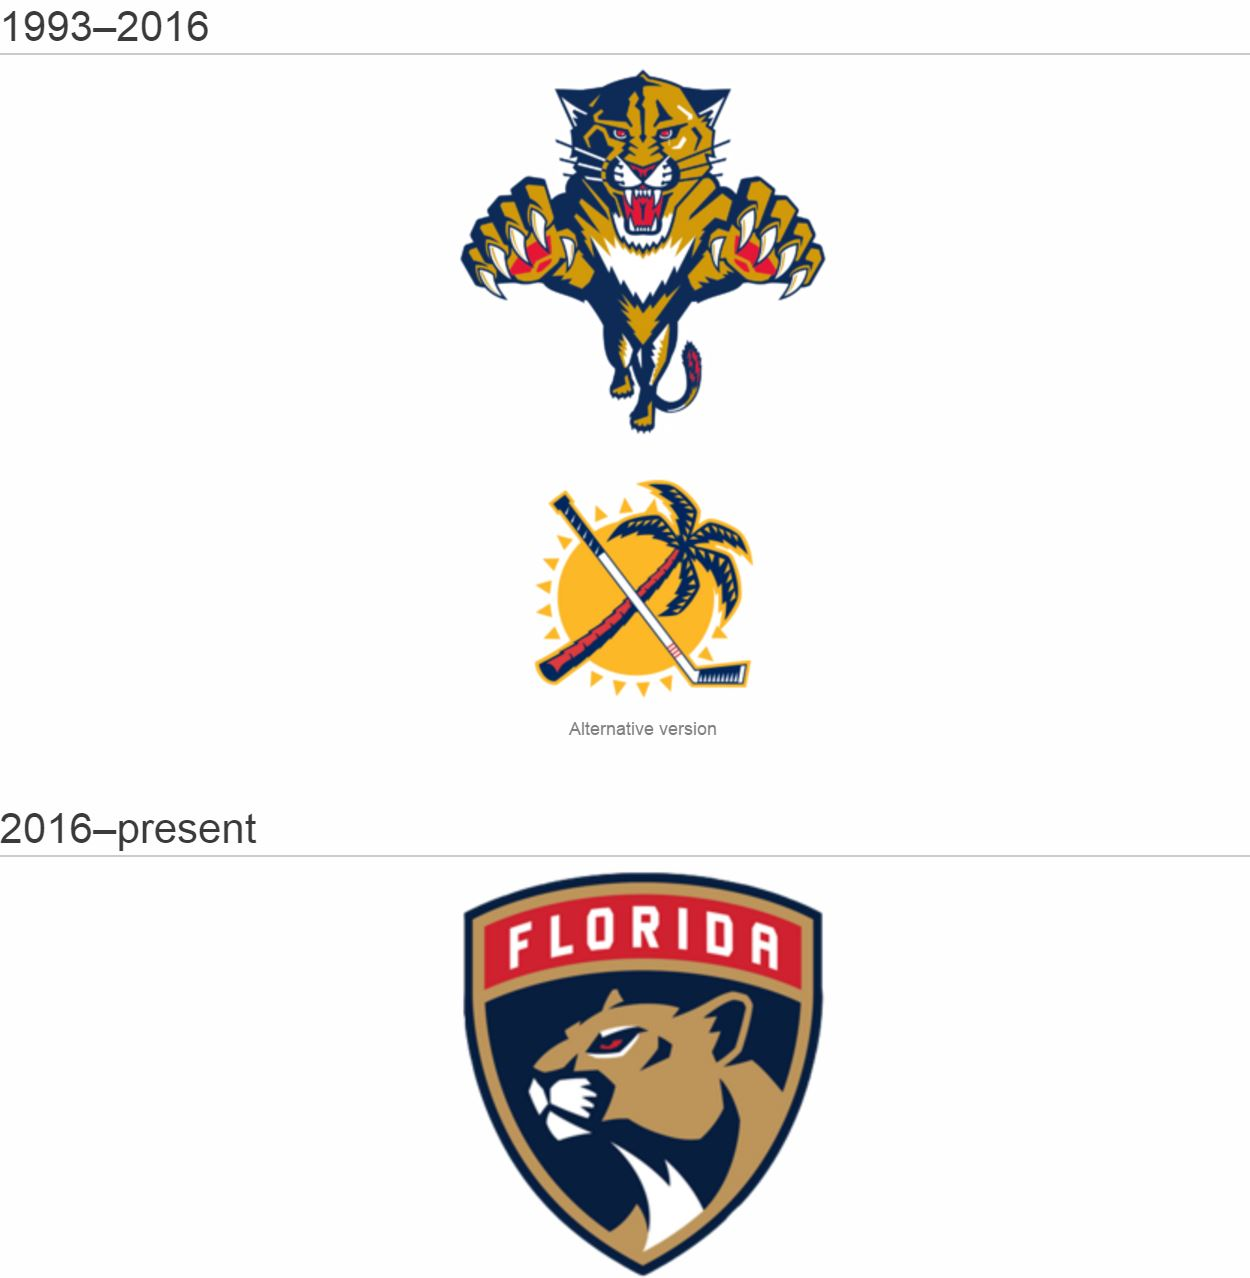 Florida Panthers logo history